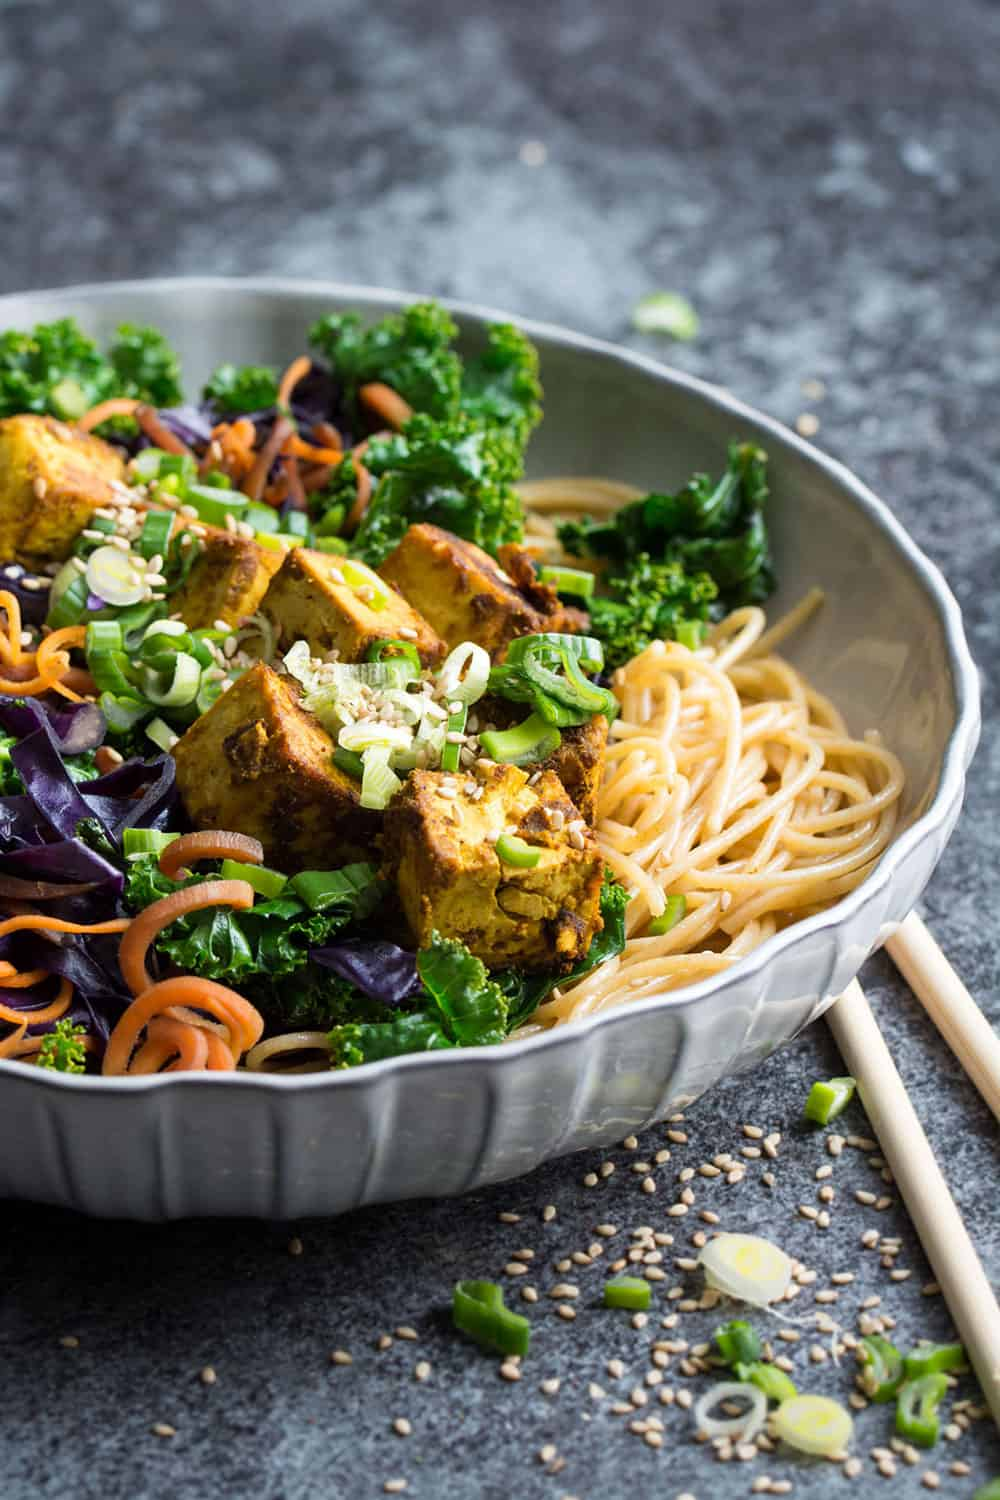 Kale Stir Fry with Crispy Curried Tofu